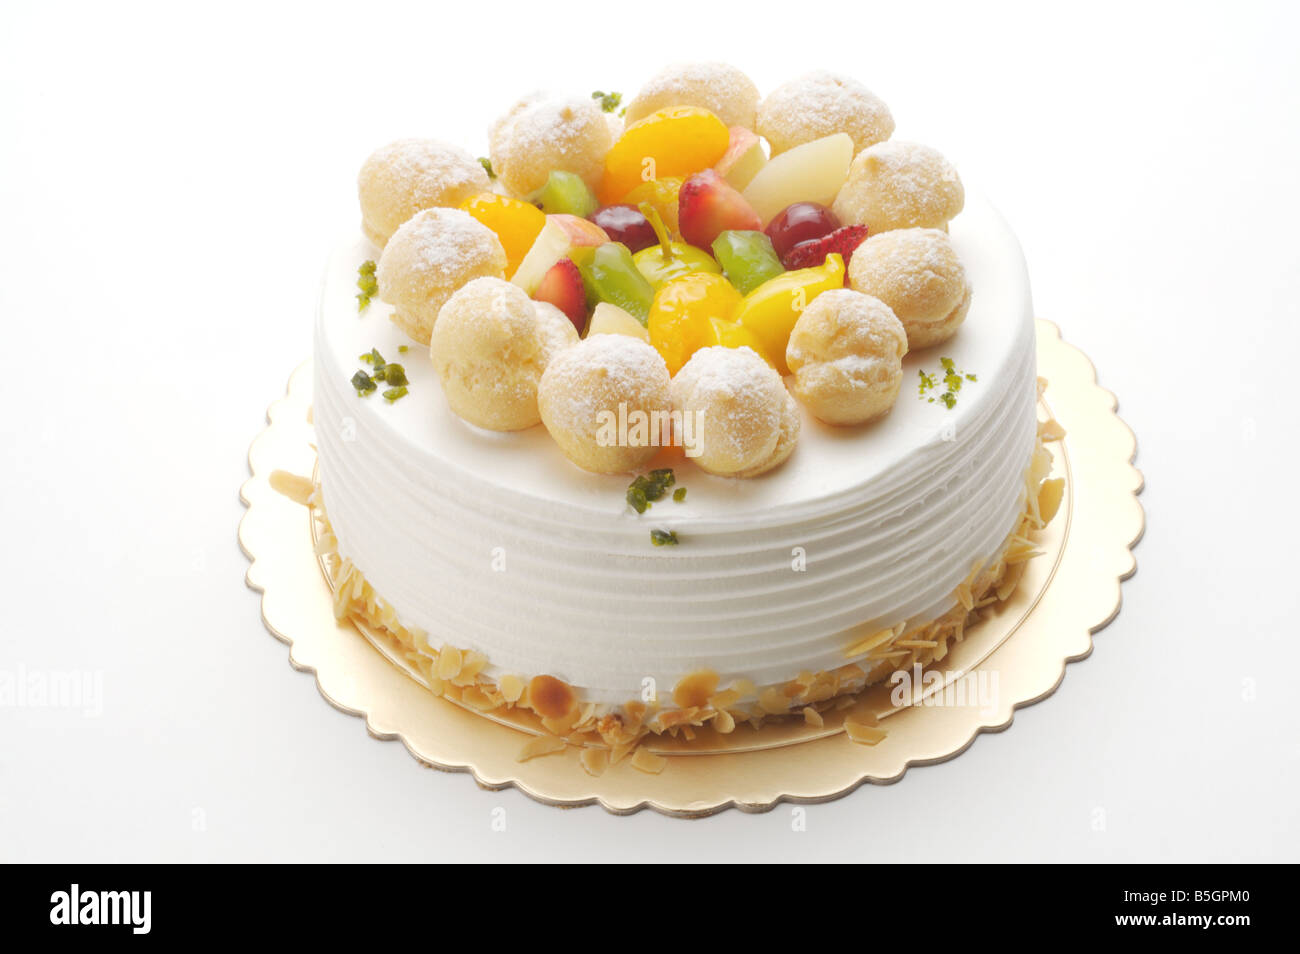 Birthday Cake With Fruit And Mini Cream Puffs On Top Stock Photo